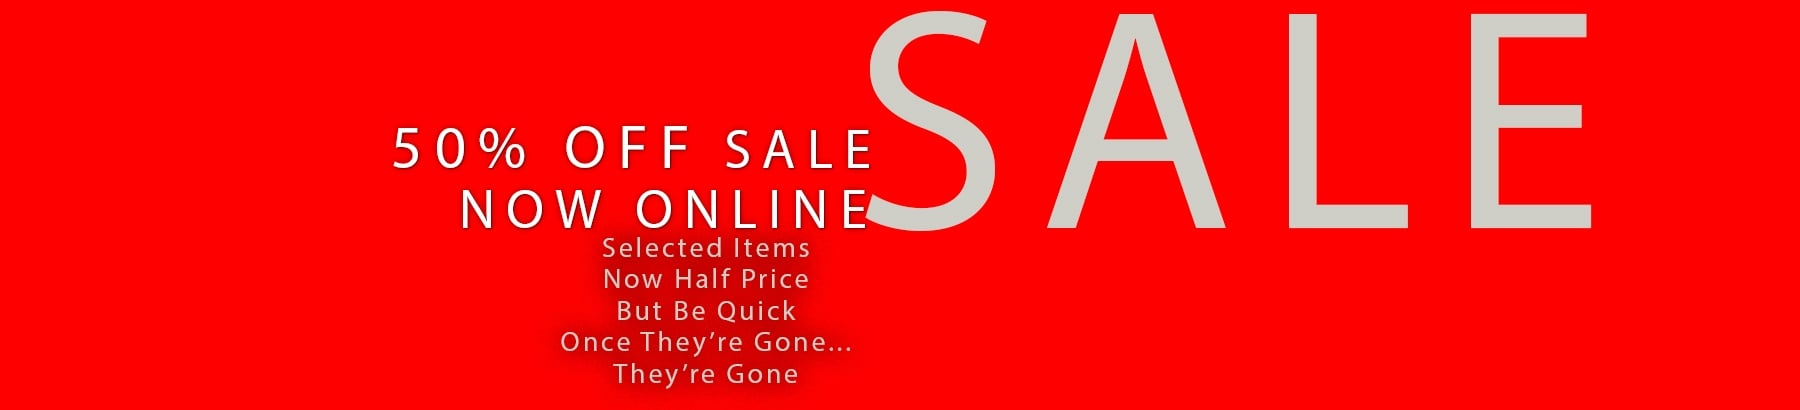 50% OFF Sale NOW ON